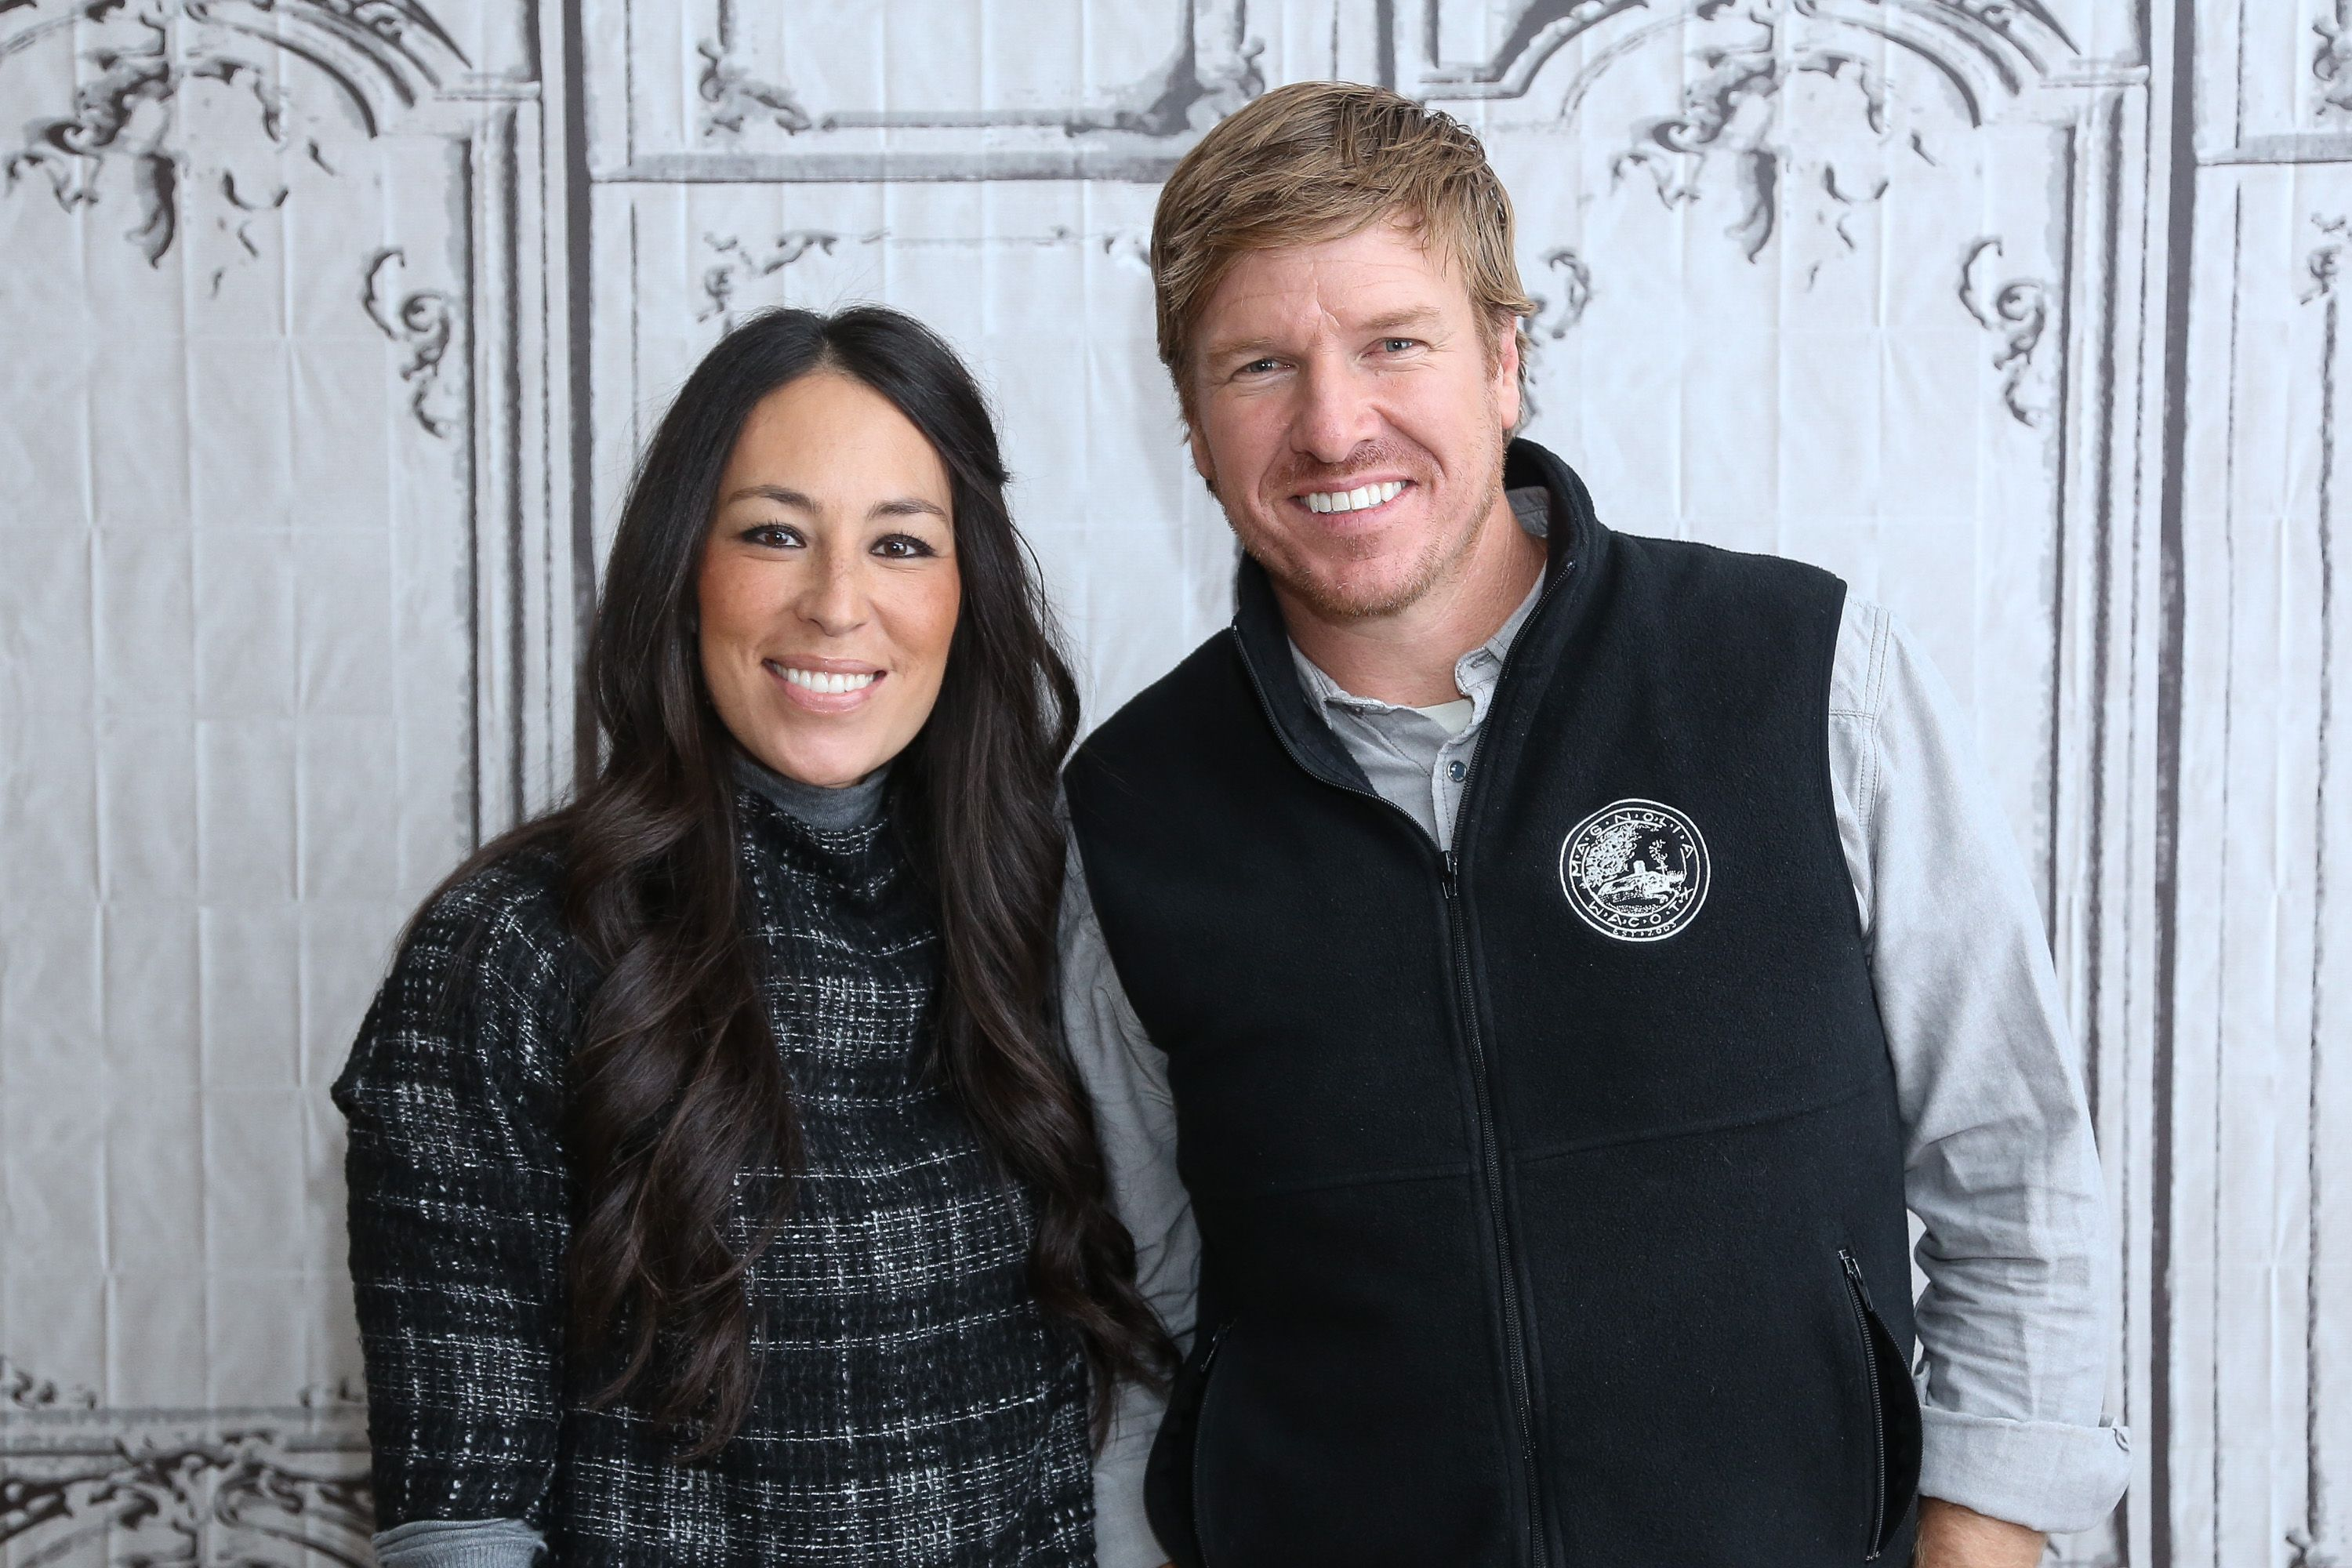 Chip and Joanna Gaines at AOL Build Presents Fixer Upper in New York on December 8, 2015 | Getty Images